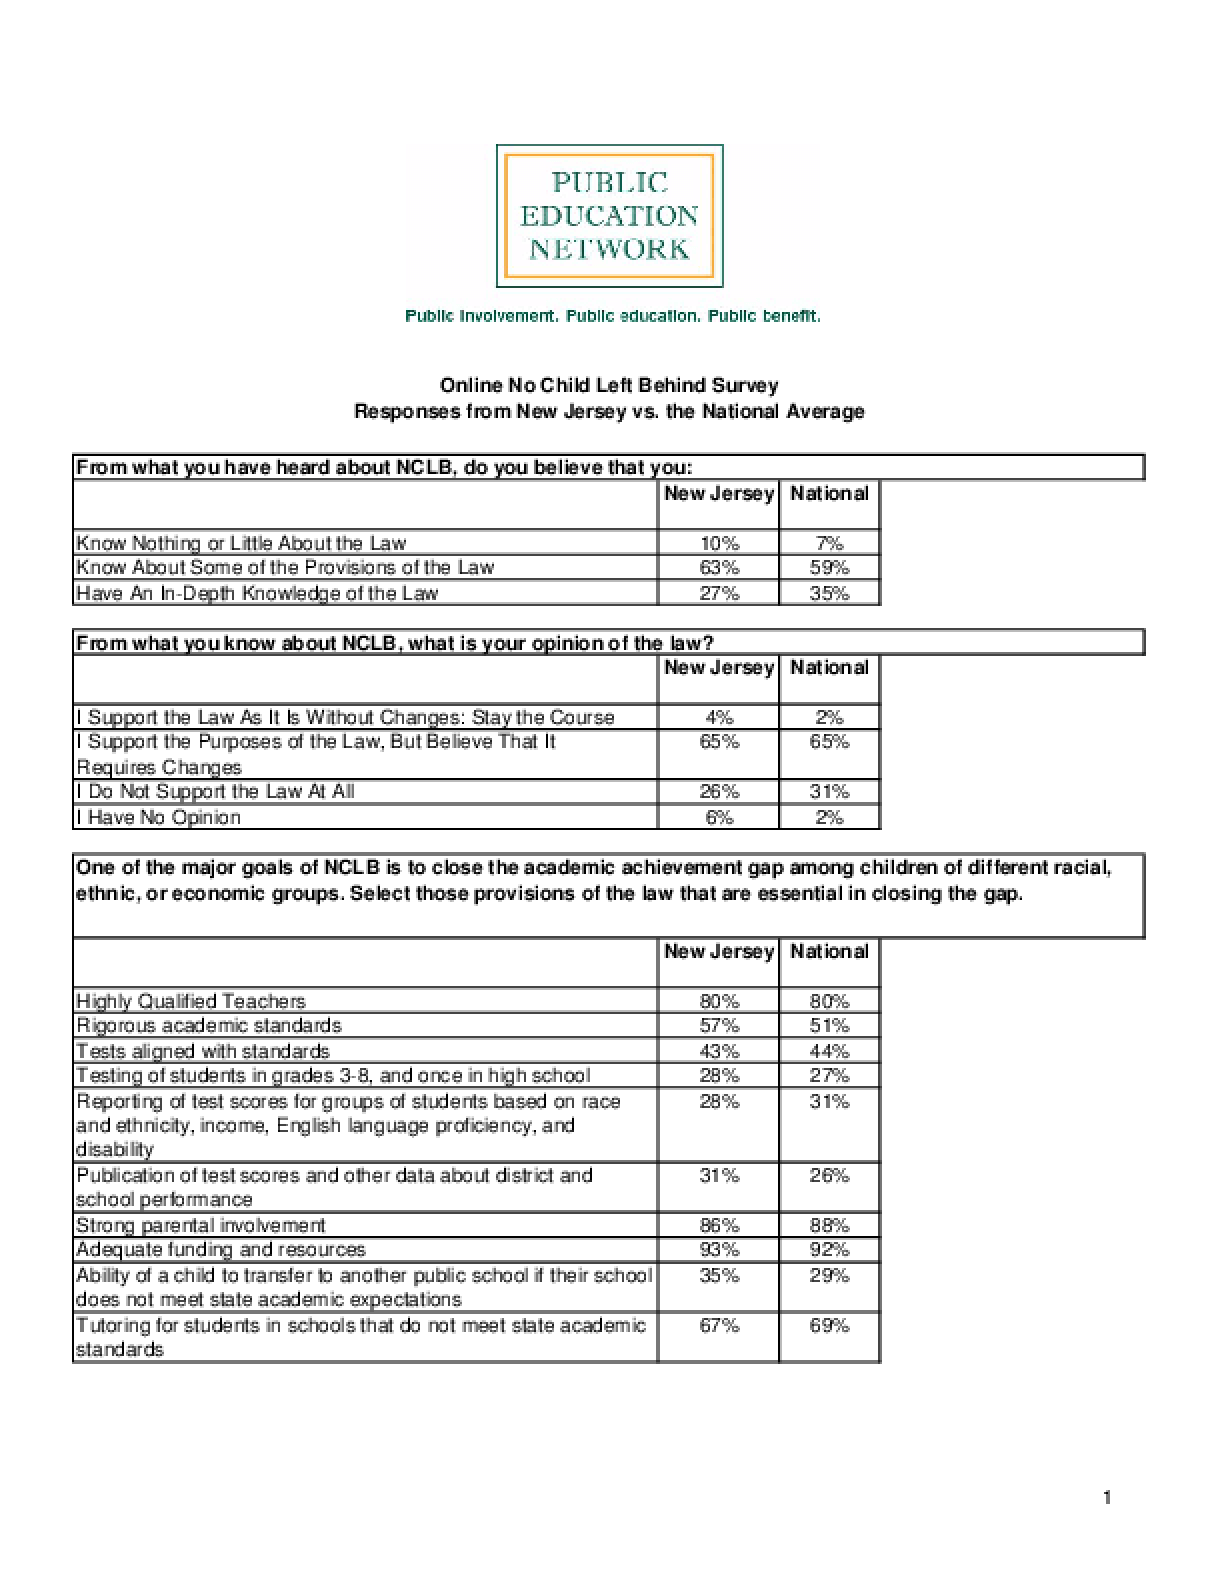 Online No Child Left Behind Survey Responses from New Jersey vs. the National Average